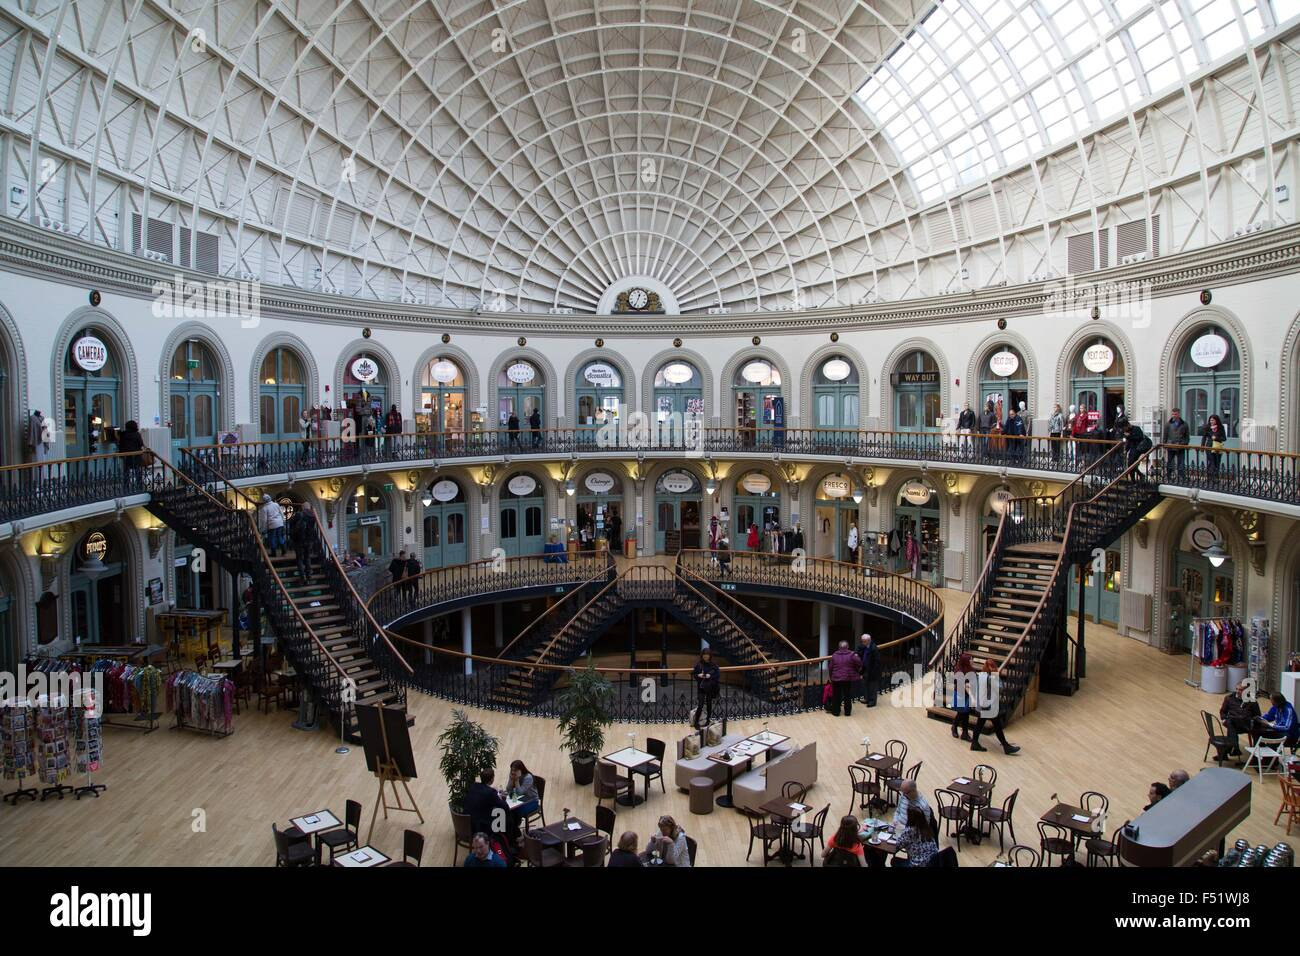 The Leeds Corn Exchange in Leeds, West Yorkshire, UK. - Stock Image